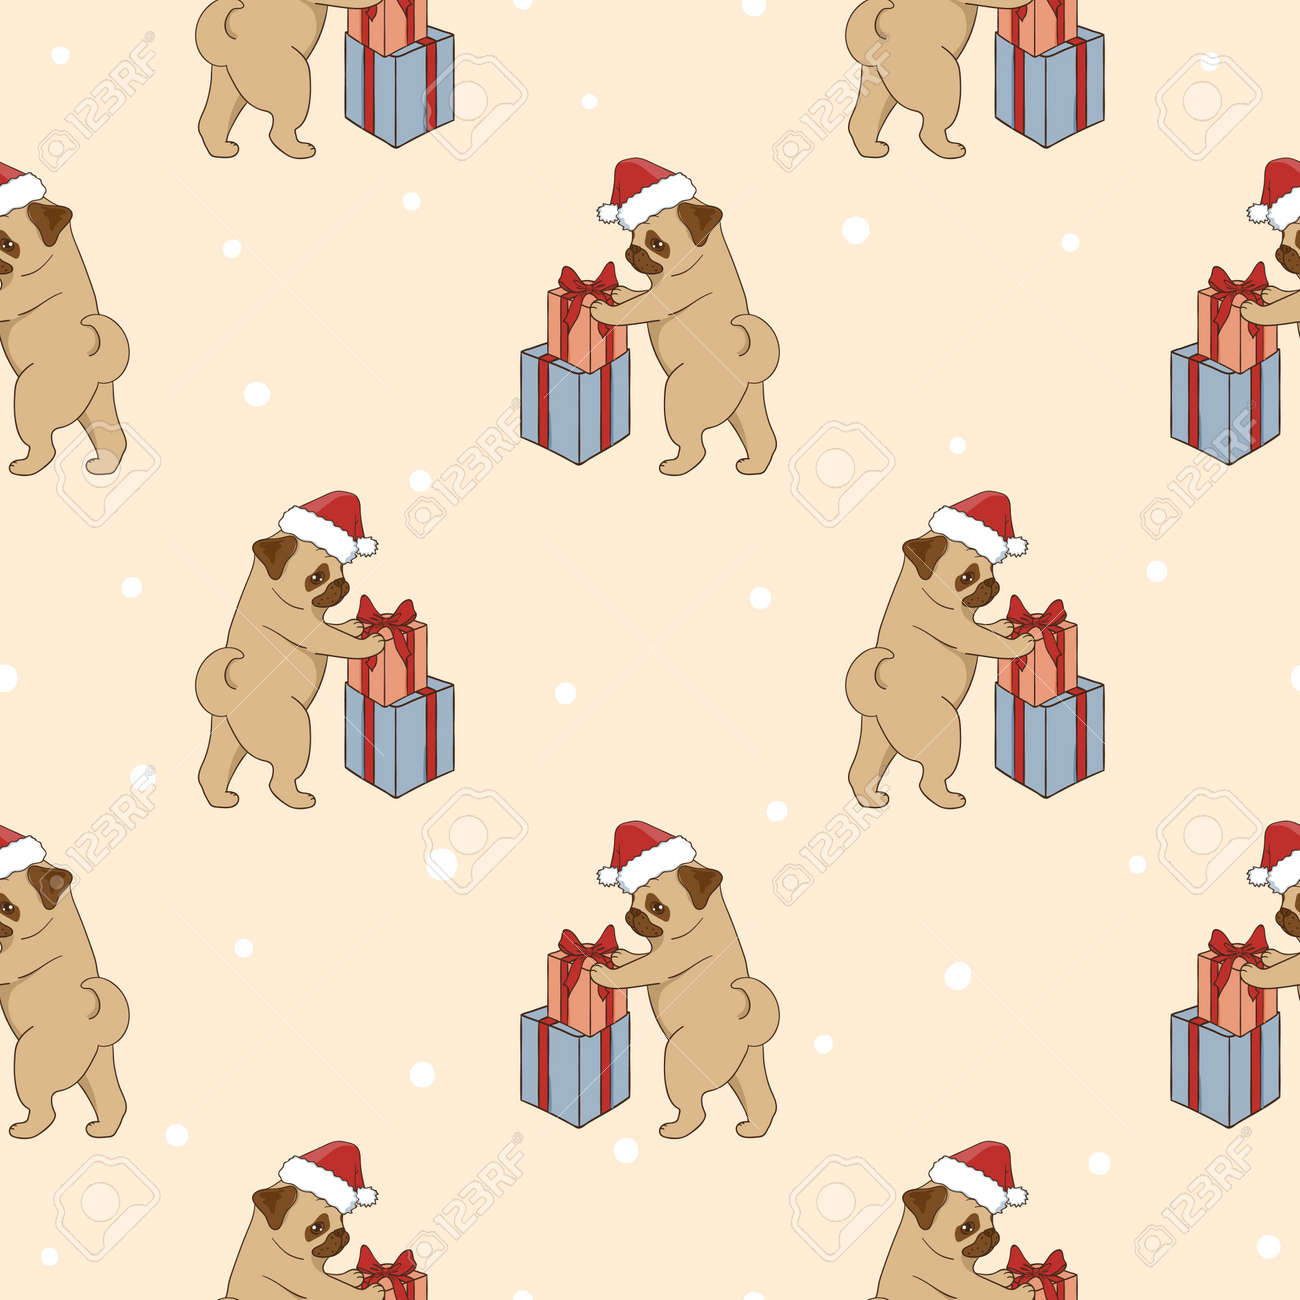 Christmas pattern with cute pugs and gifts. Vector holiday background with cartoon dogs. Stock